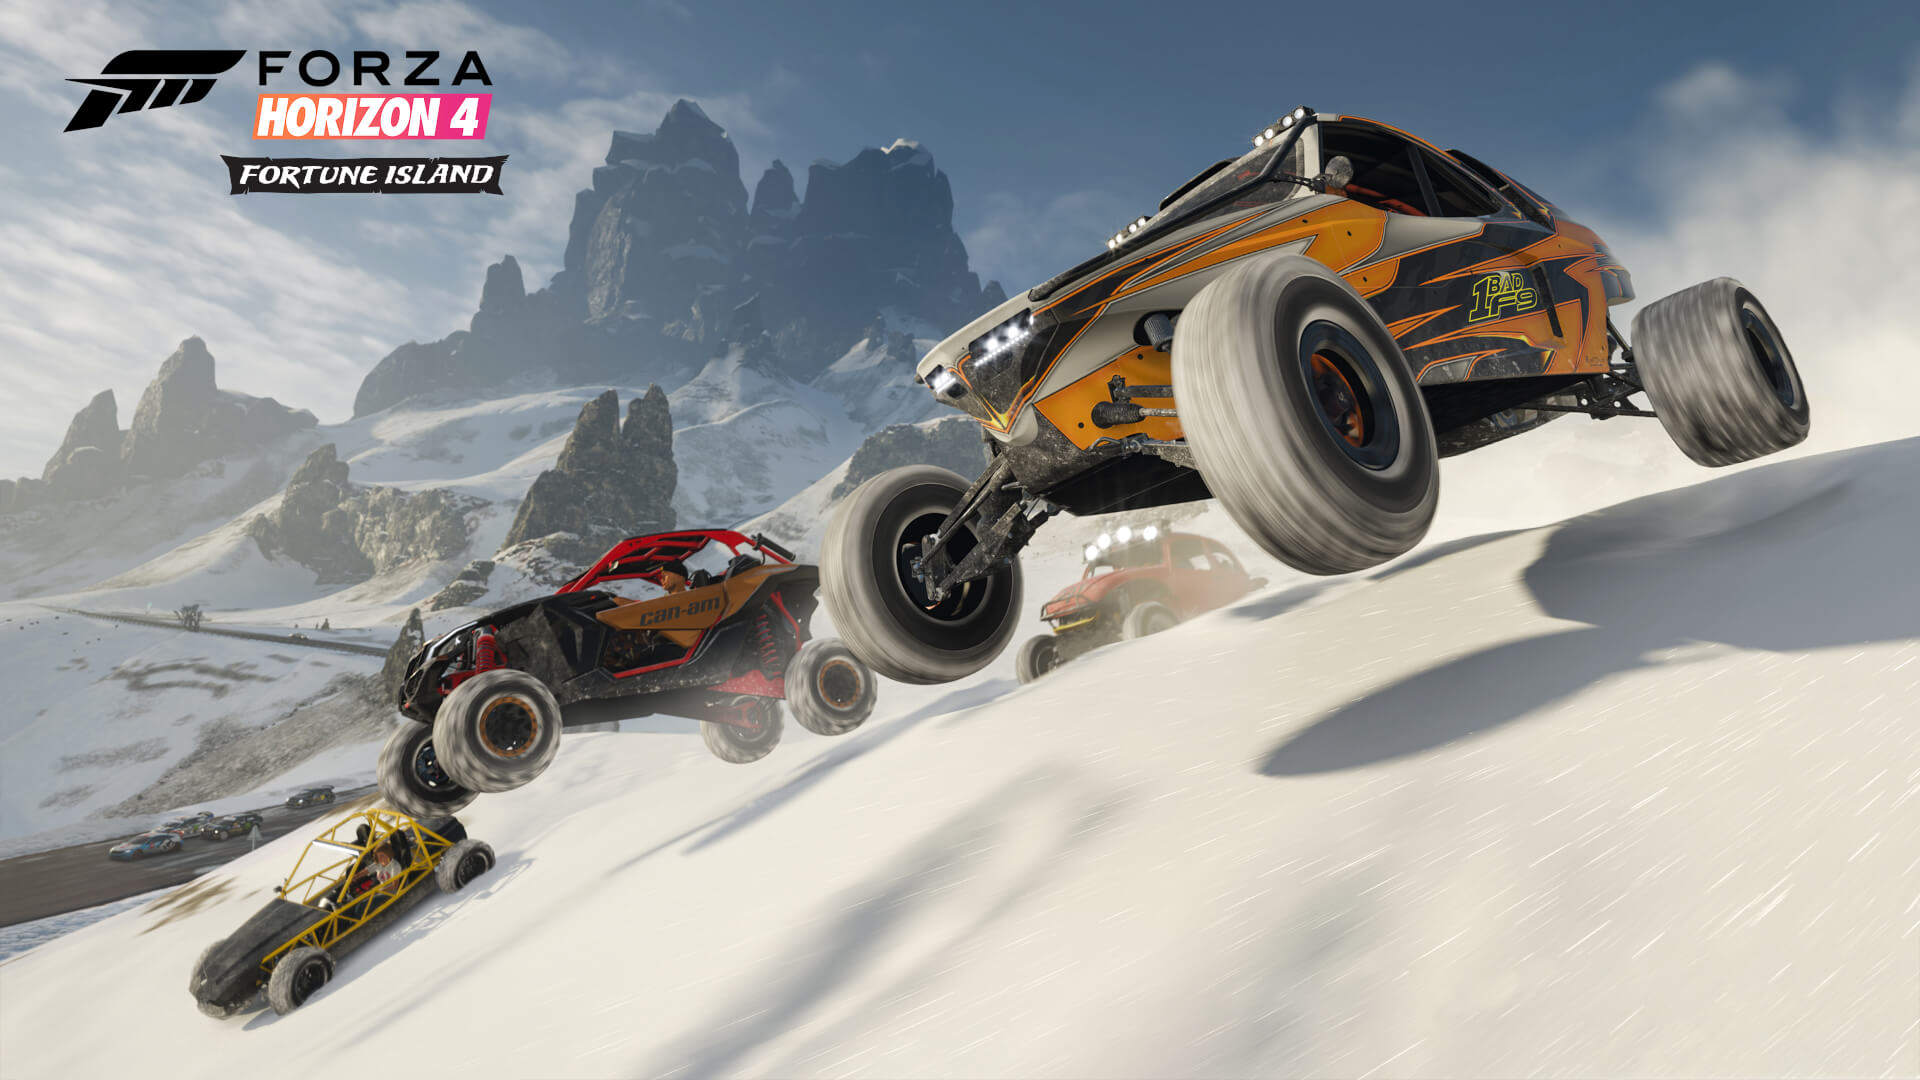 Forza Horizon 4 Fortune Island Cars, Events and Features